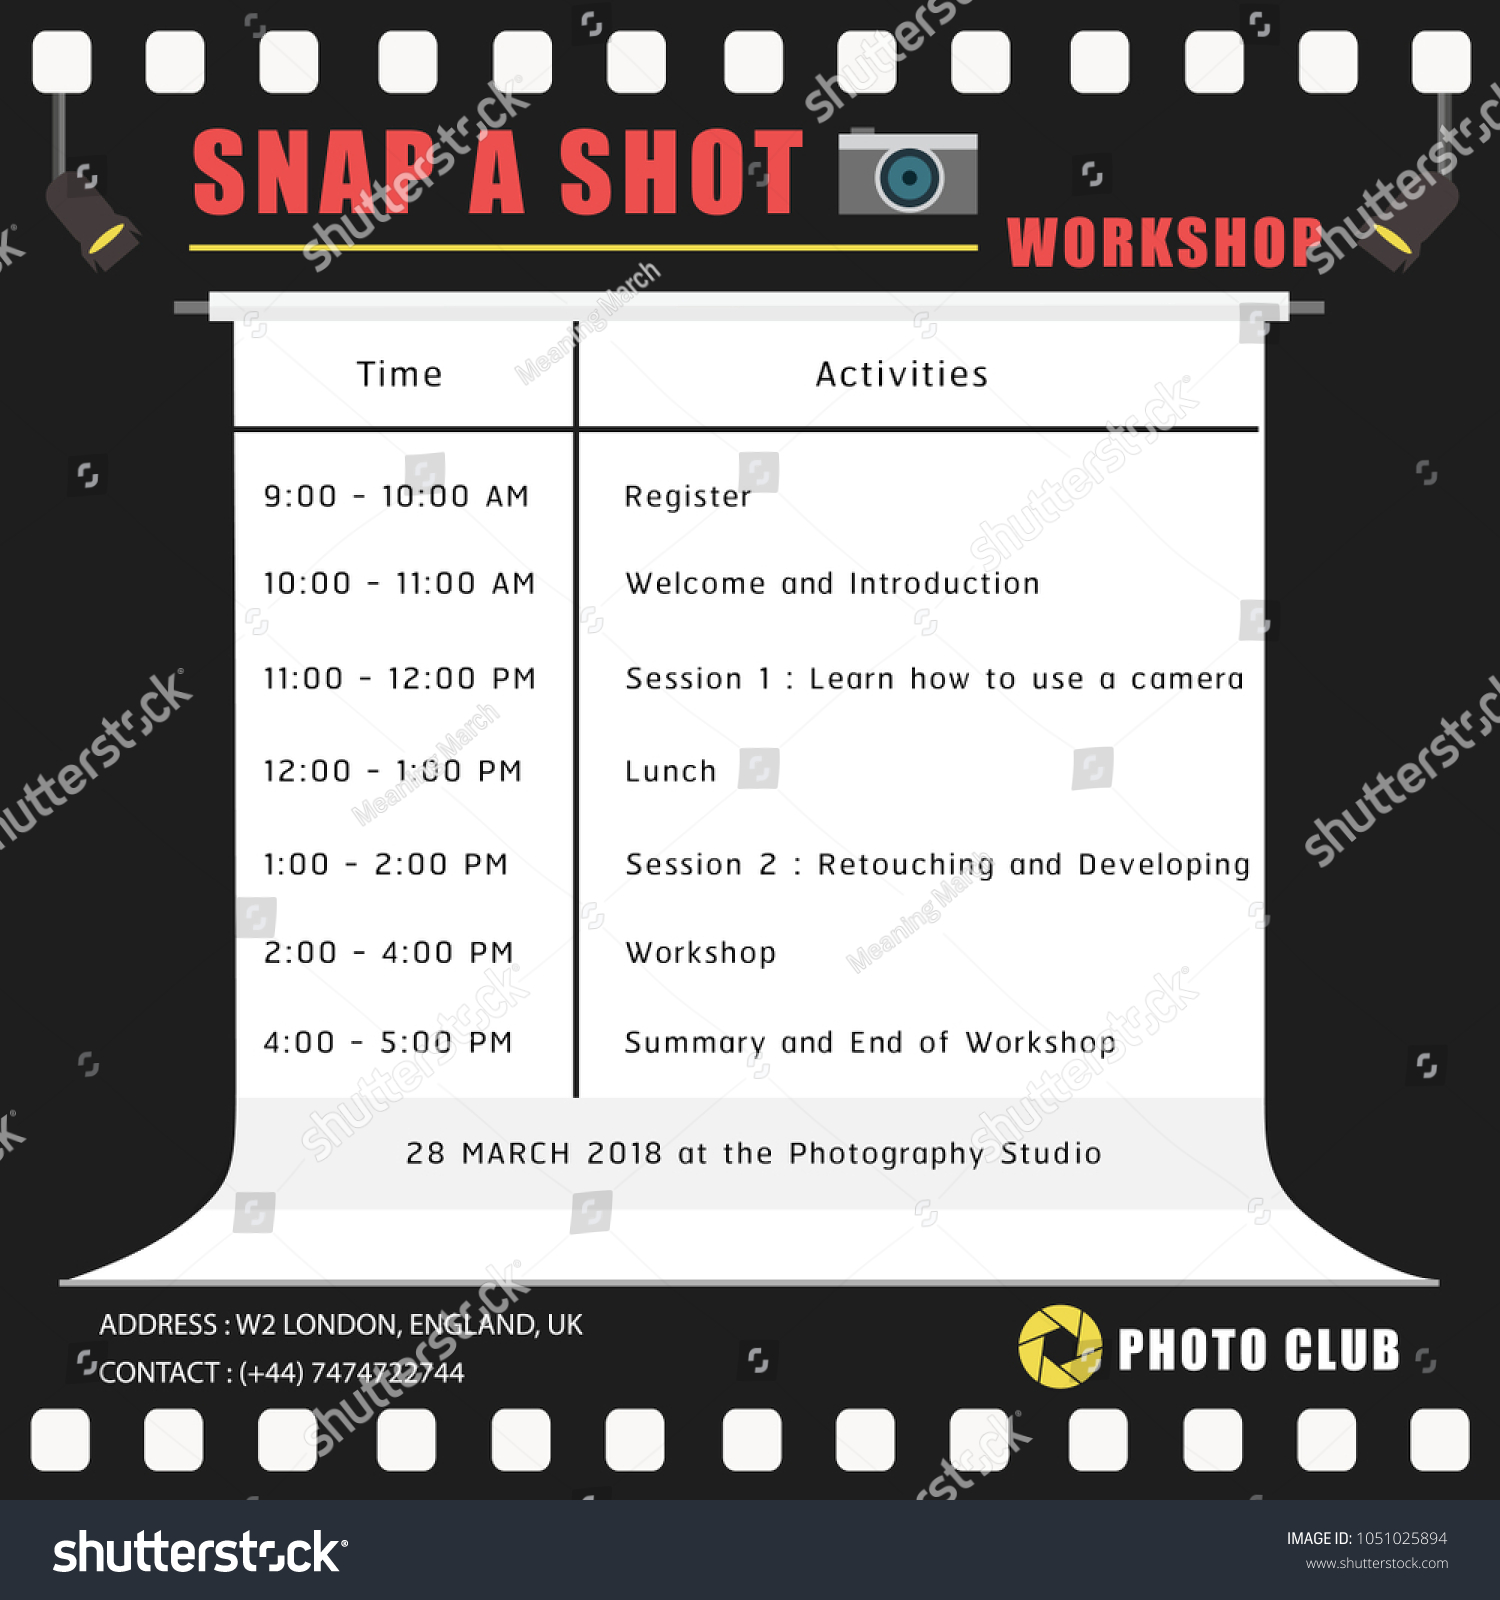 Sample Timetable Schedule Template About Photography Stock Vector ...